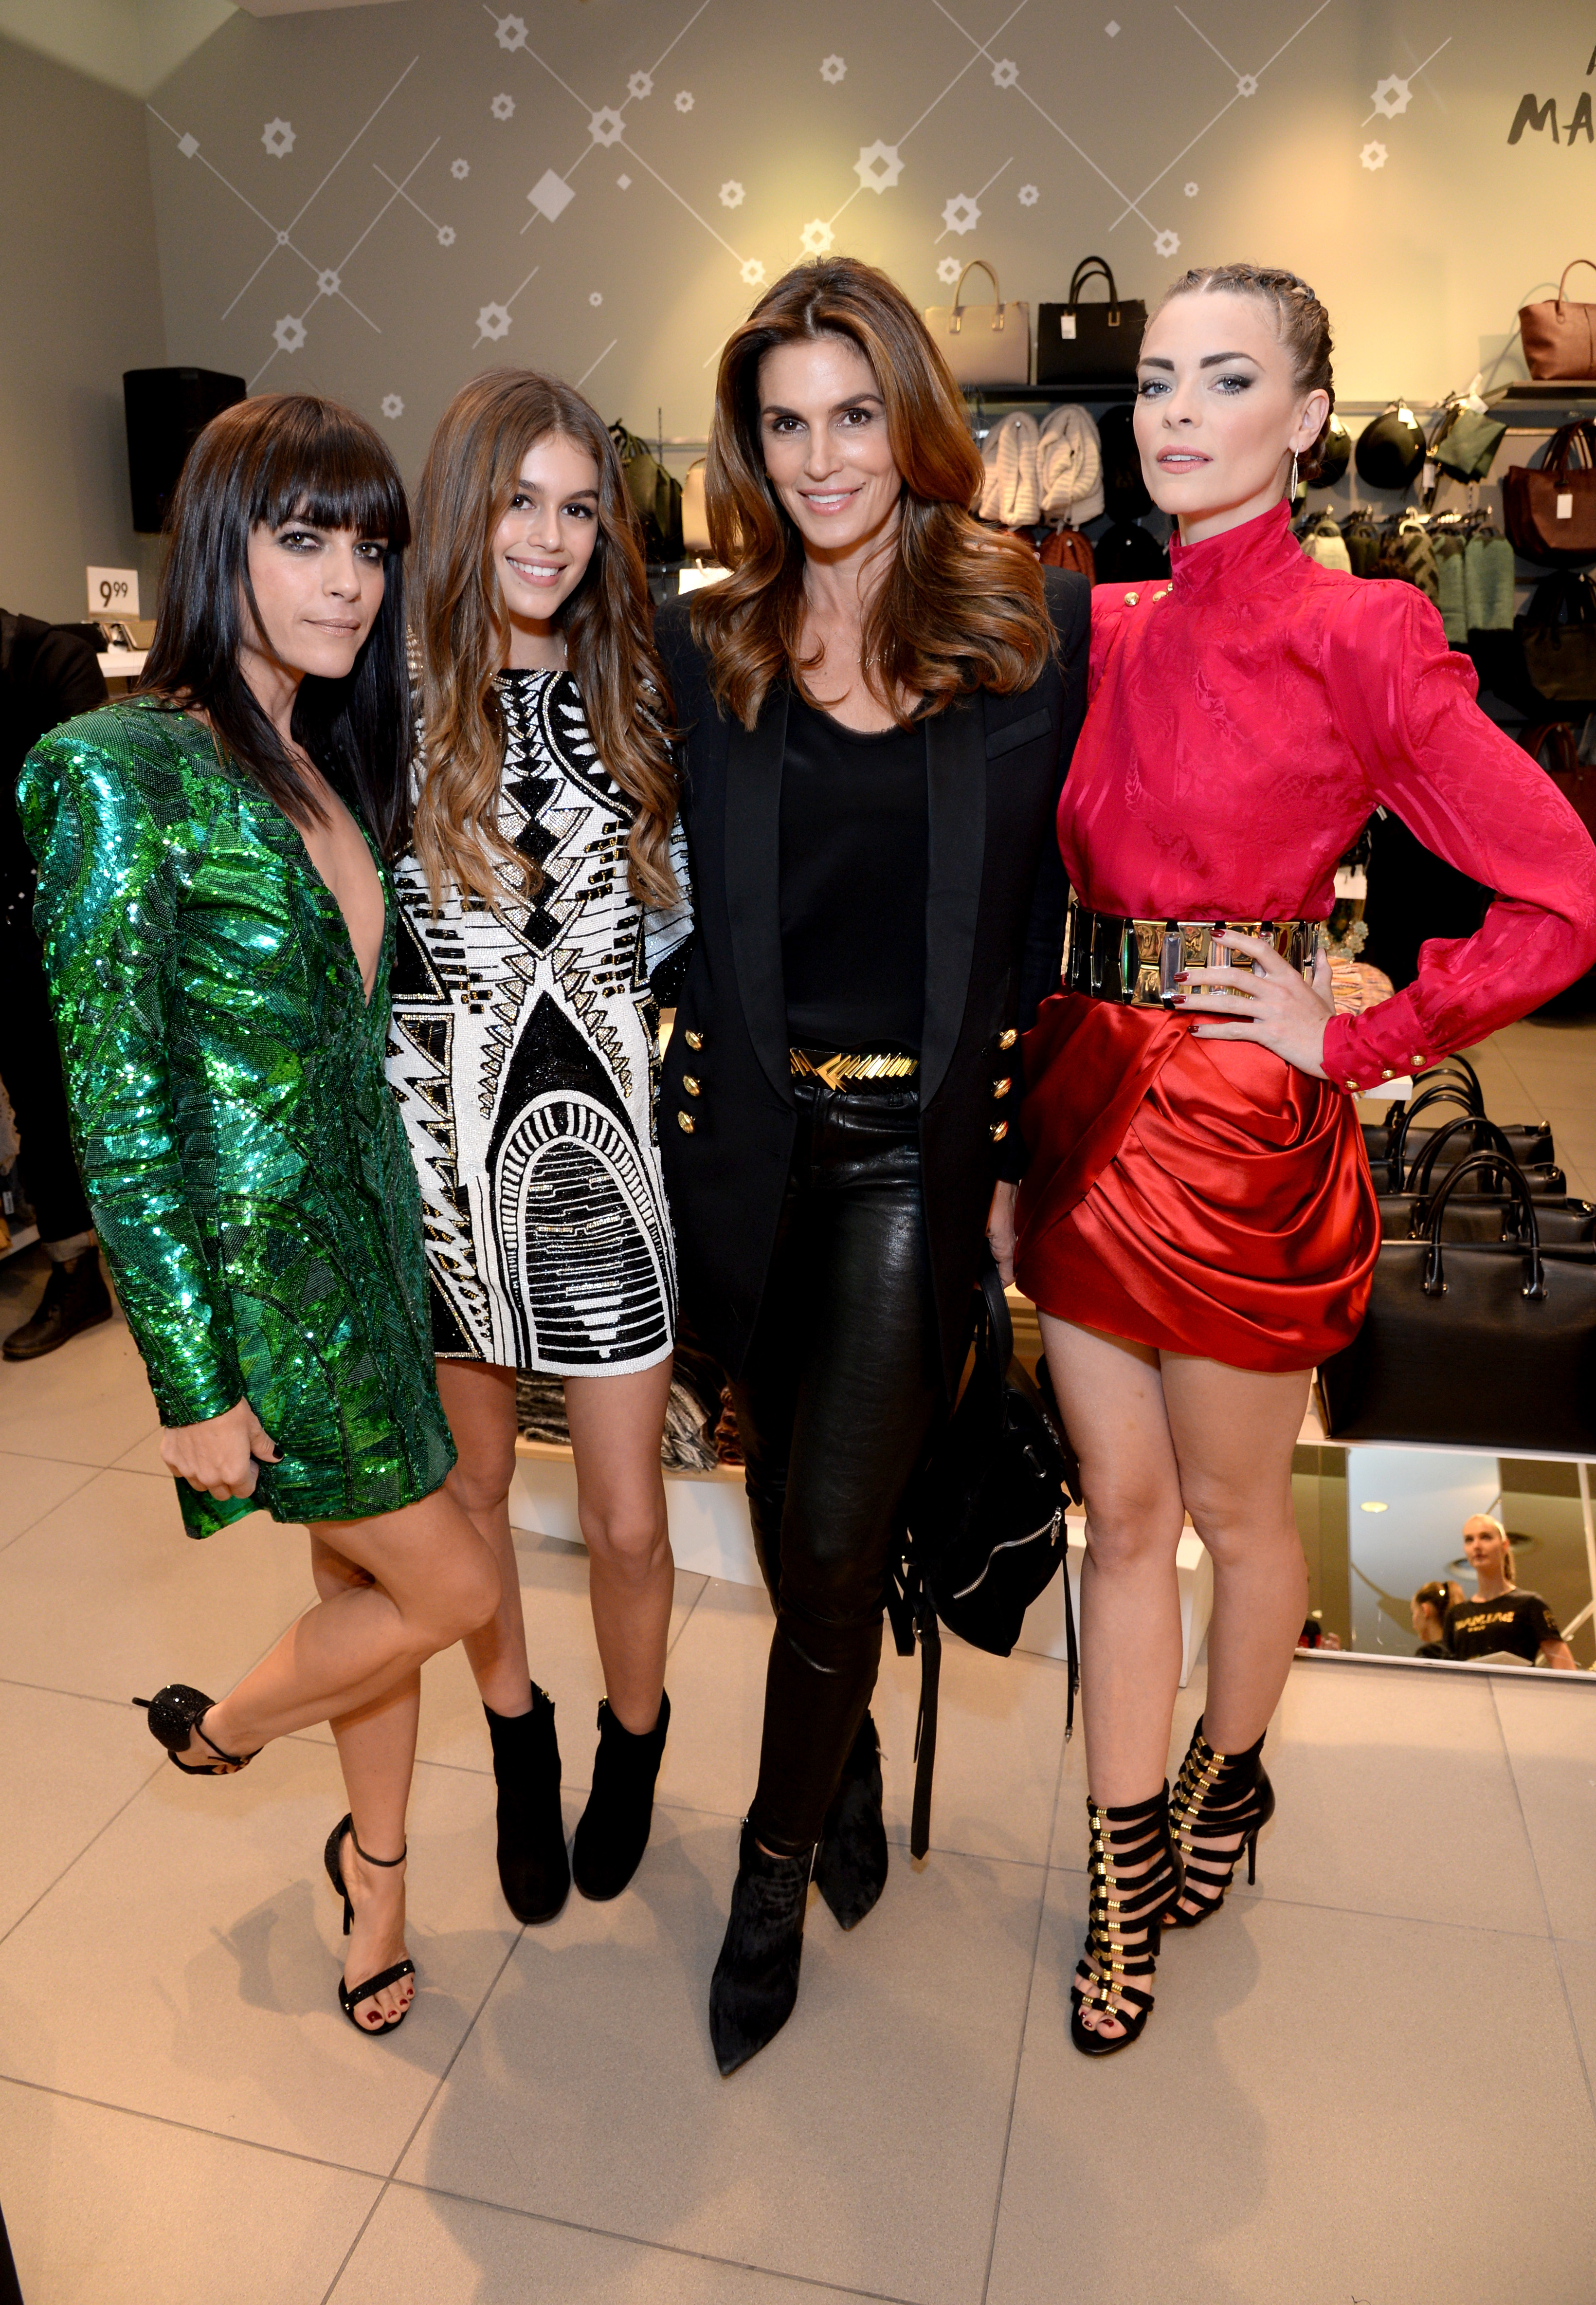 So sought after was the Balmain x H&M collection that even stars (dressed head-to-toe in Balmain) found themselves poring over the racks at the Los Angeles pre-launch party overnight. Check out who got a piece of the sold-out range.